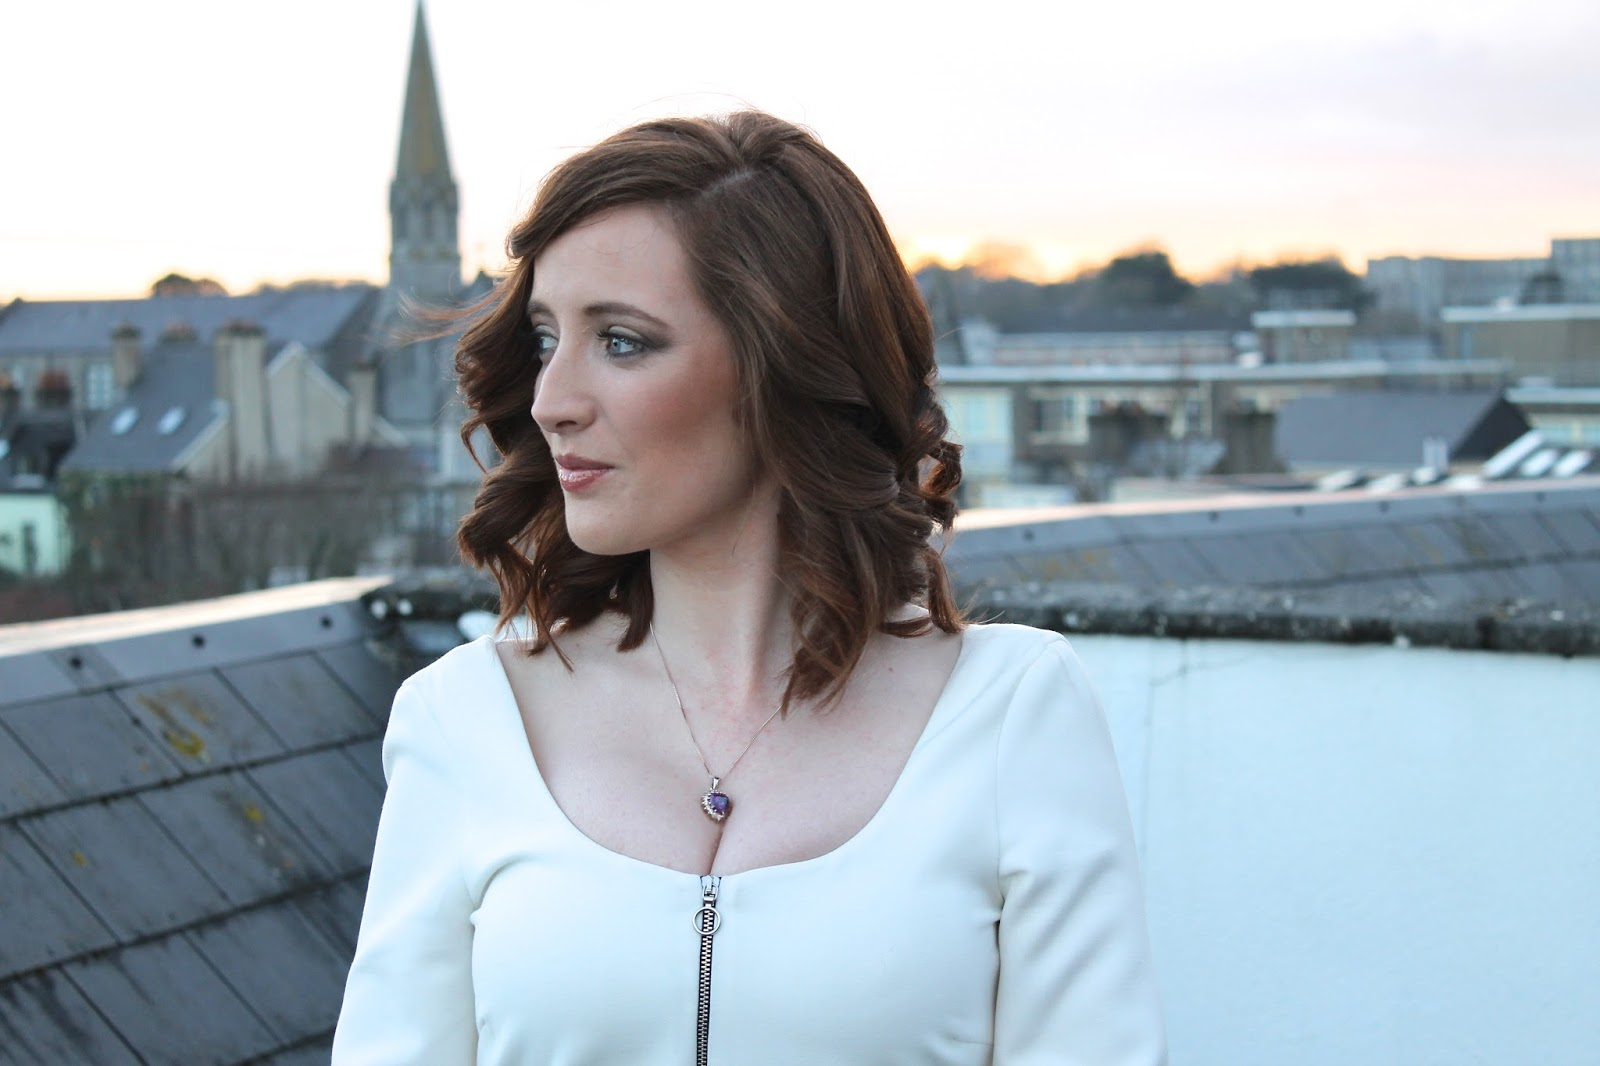 Profile of Bec Boop in Galway city wearing white dress